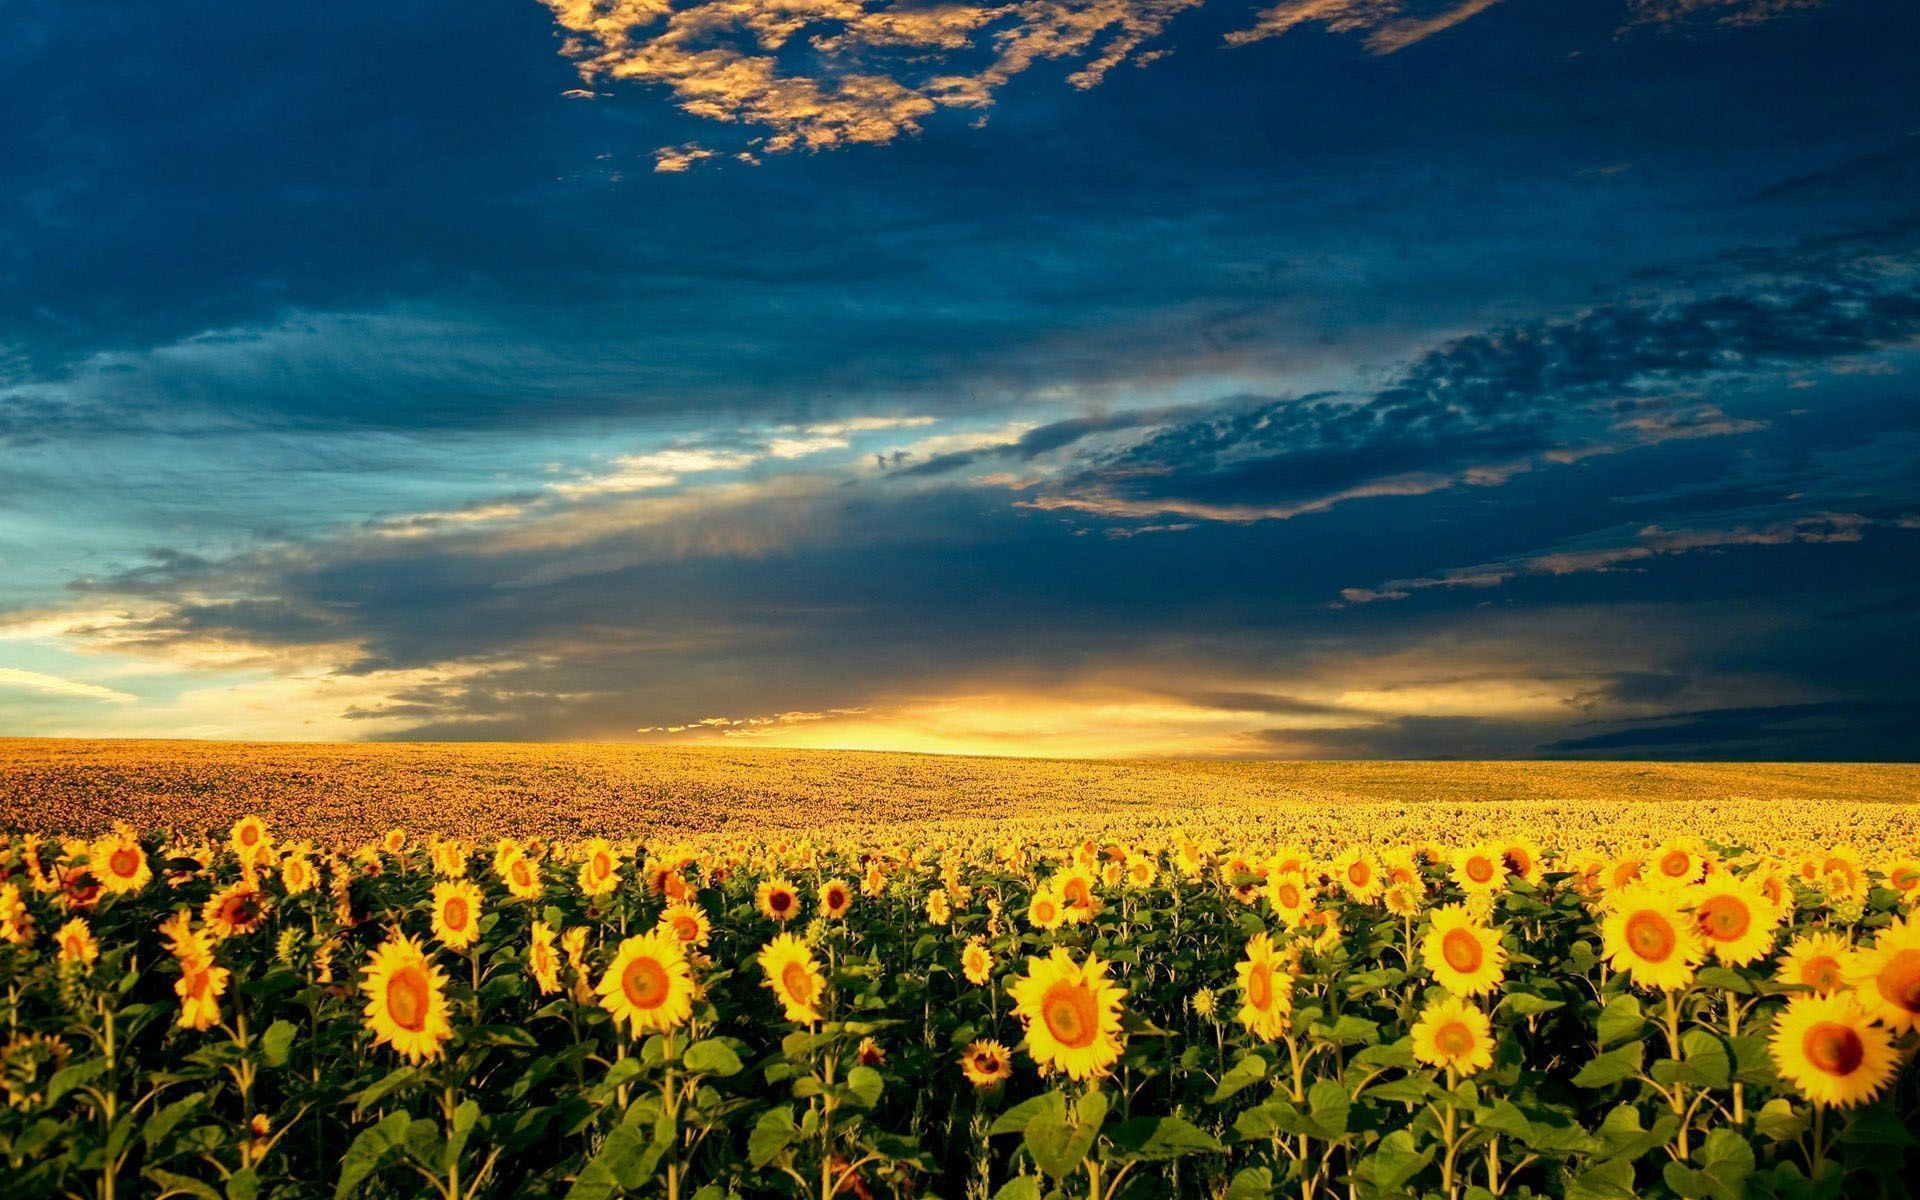 1920x1080 Sunflower Wallpaper Desktop